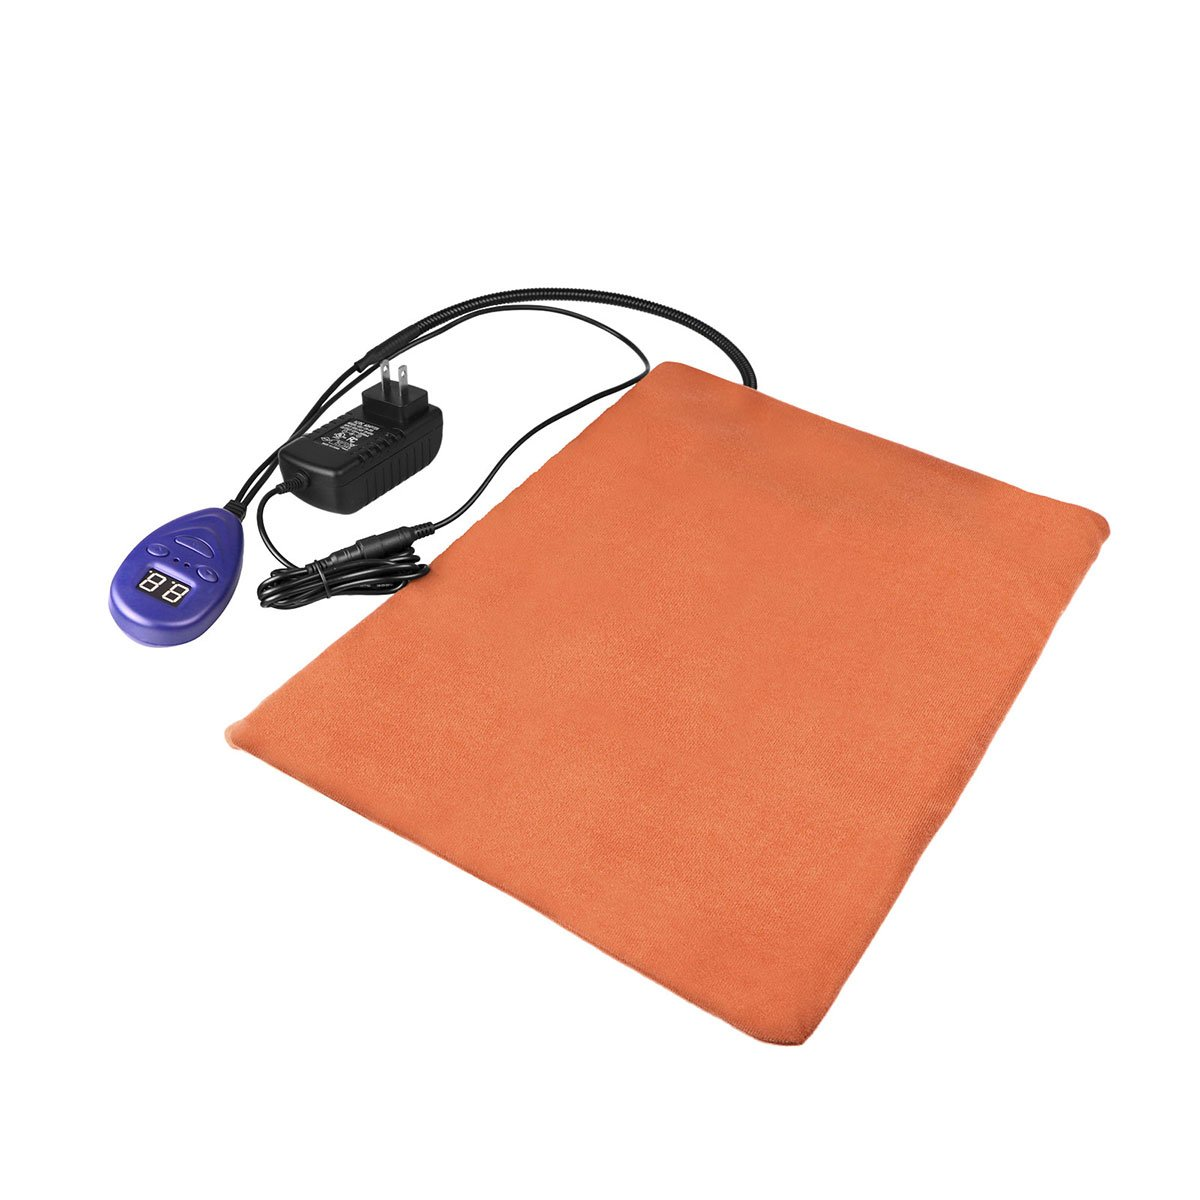 Powstro Pets Heating Pad Electric Warming Mat Chew Resistant/7 Grade Temp/Overheat Protection for Dogs Cats Beds Soft Removable Cover